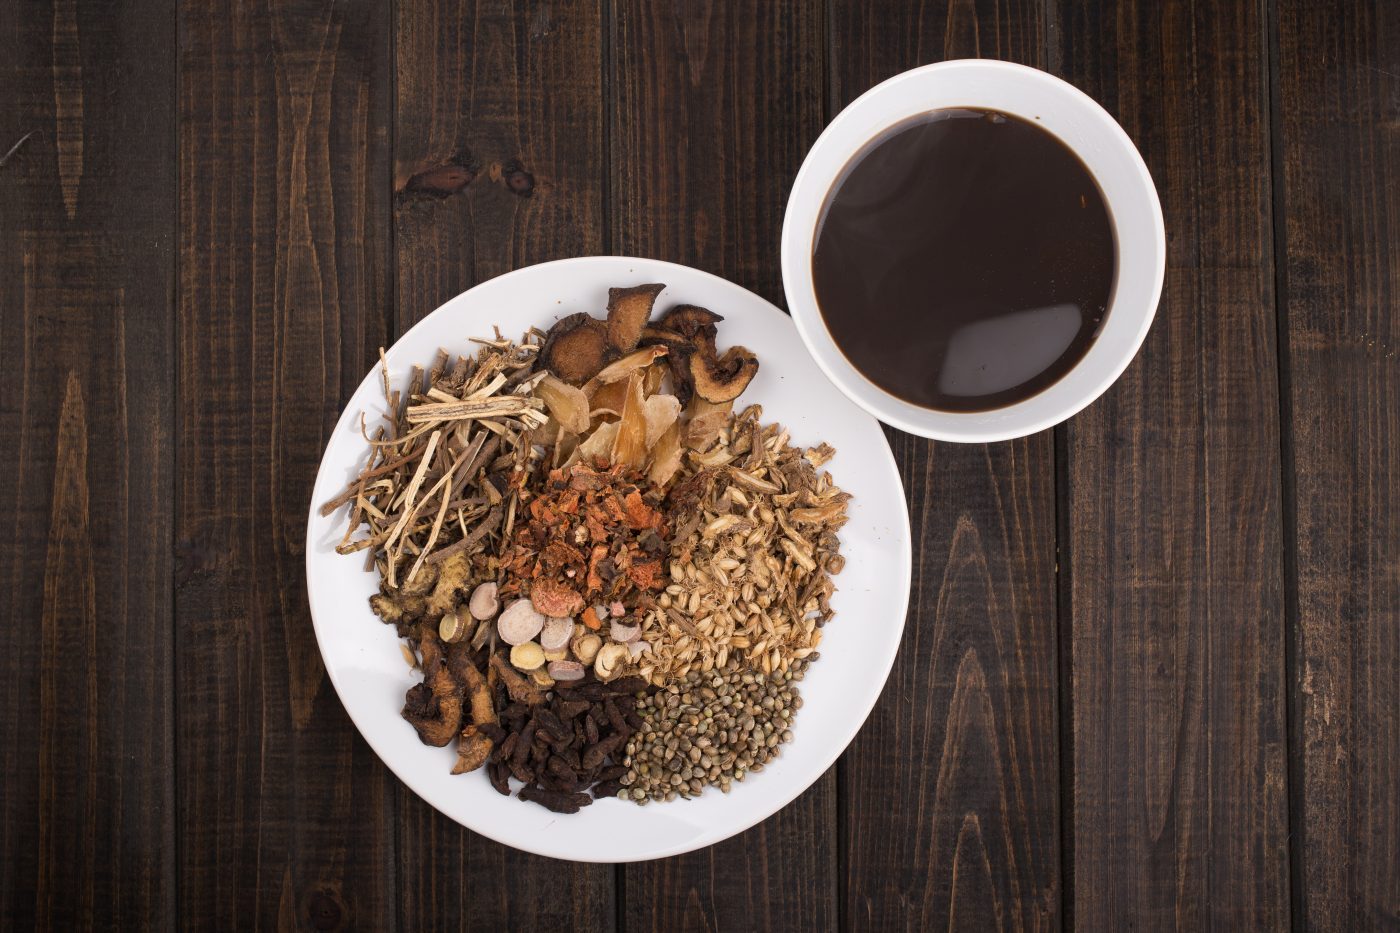 Endometriosis diet change and going gluten free previous traditional chinese medicine bushen huoxue shows potential for treating endometriosis study suggests forumfinder Images